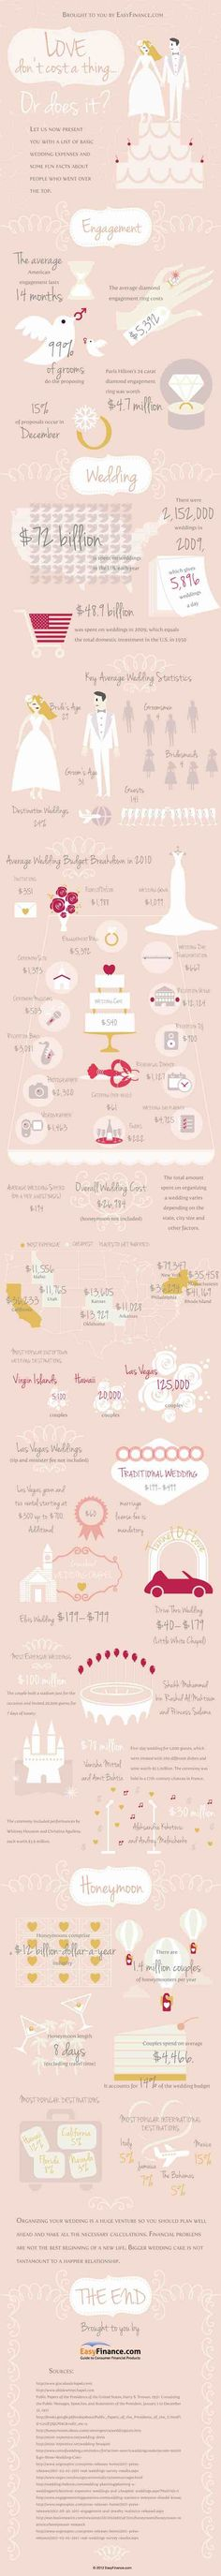 Wedding Budget Checklist To Stay On Track - Easy Finance via Oh Lovely Day